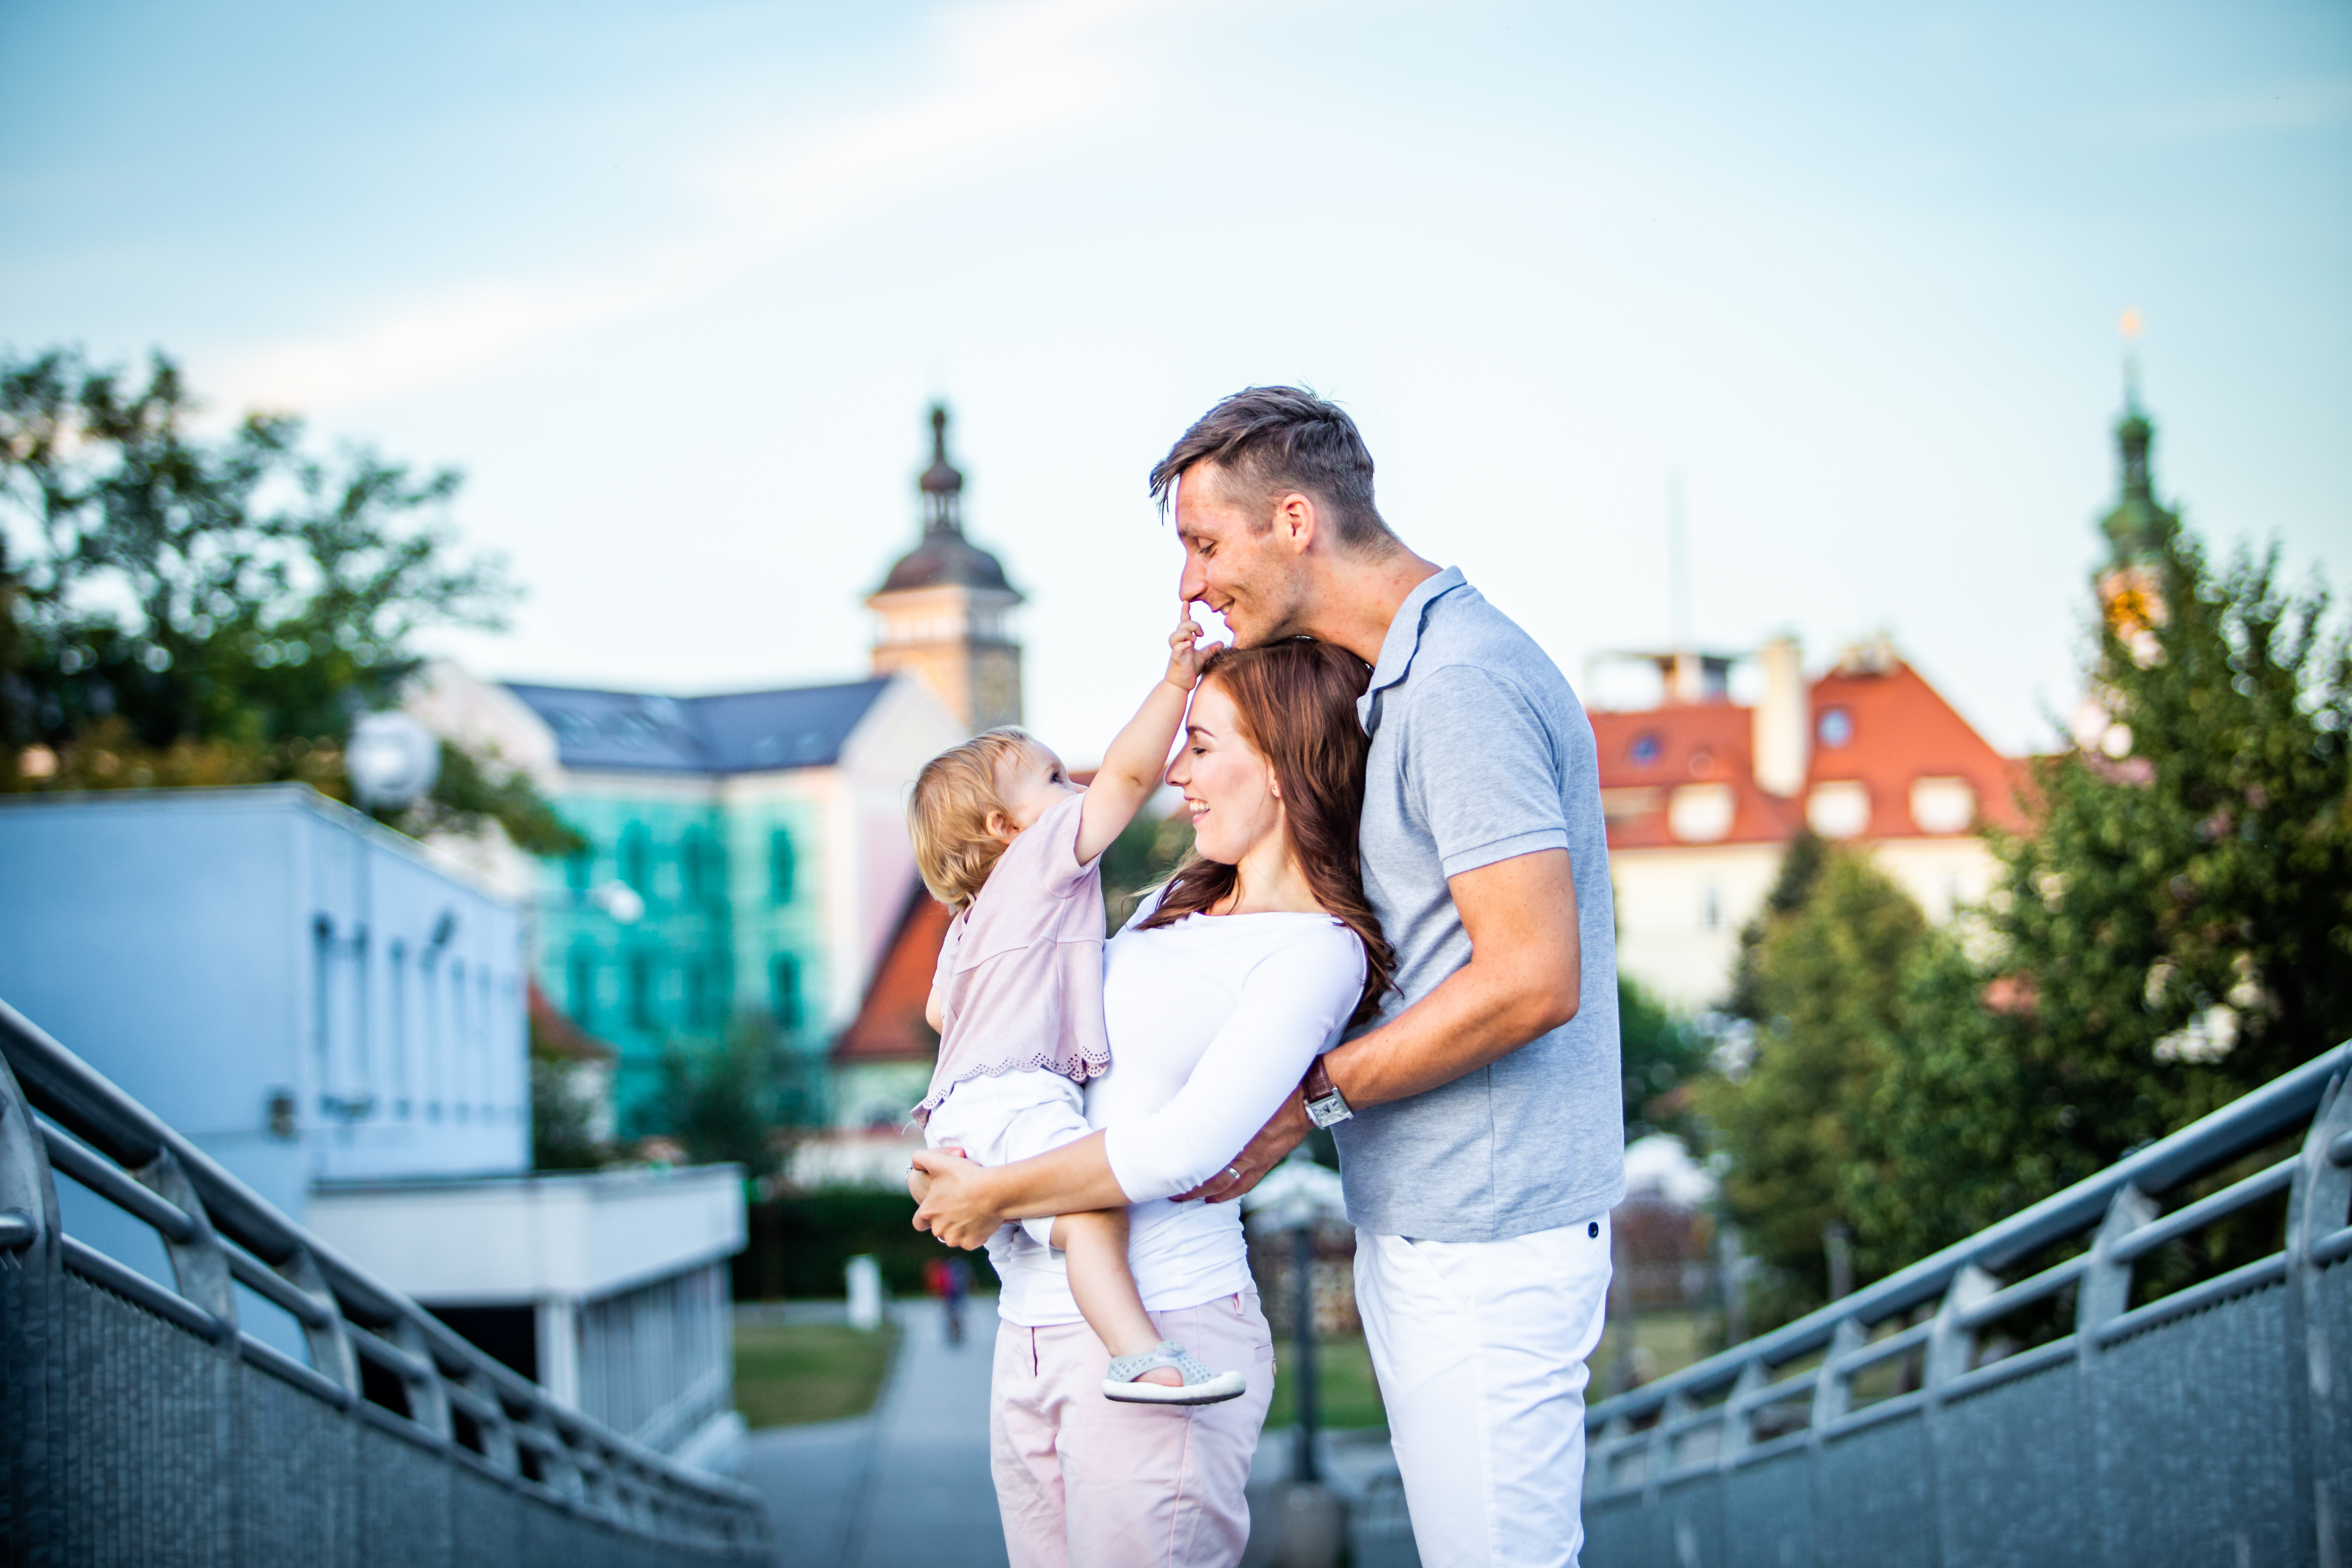 Family photography in the town